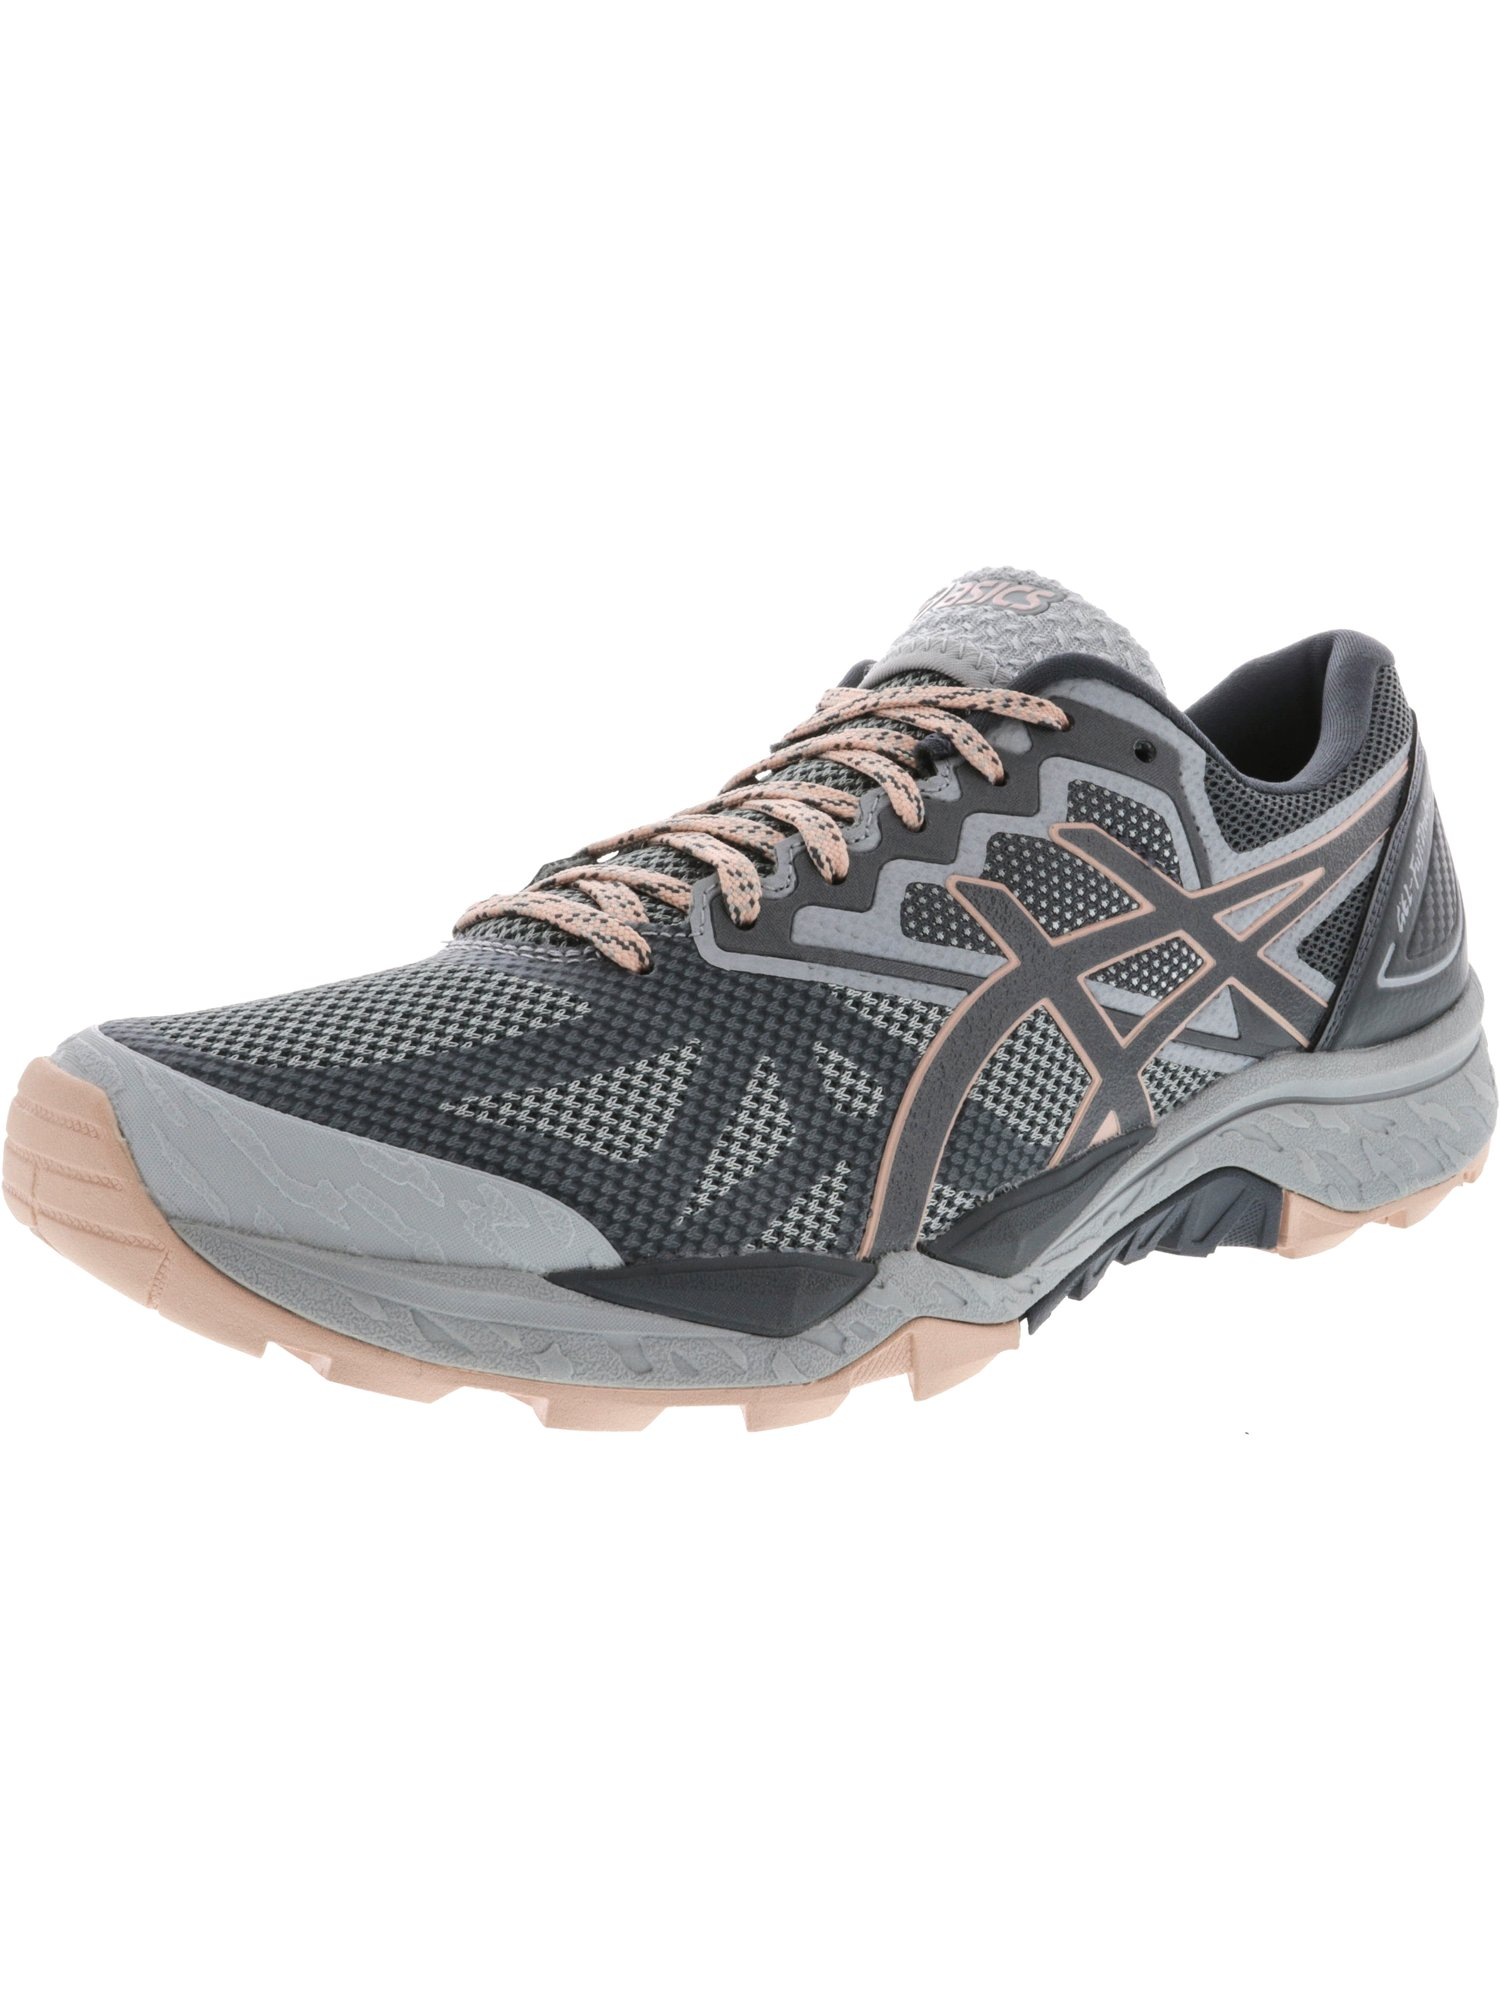 Asics Women's Gel-Fujitrabuco 6 Mid Grey / Carbon Evening Sand Ankle-High Running Shoe - 8.5M